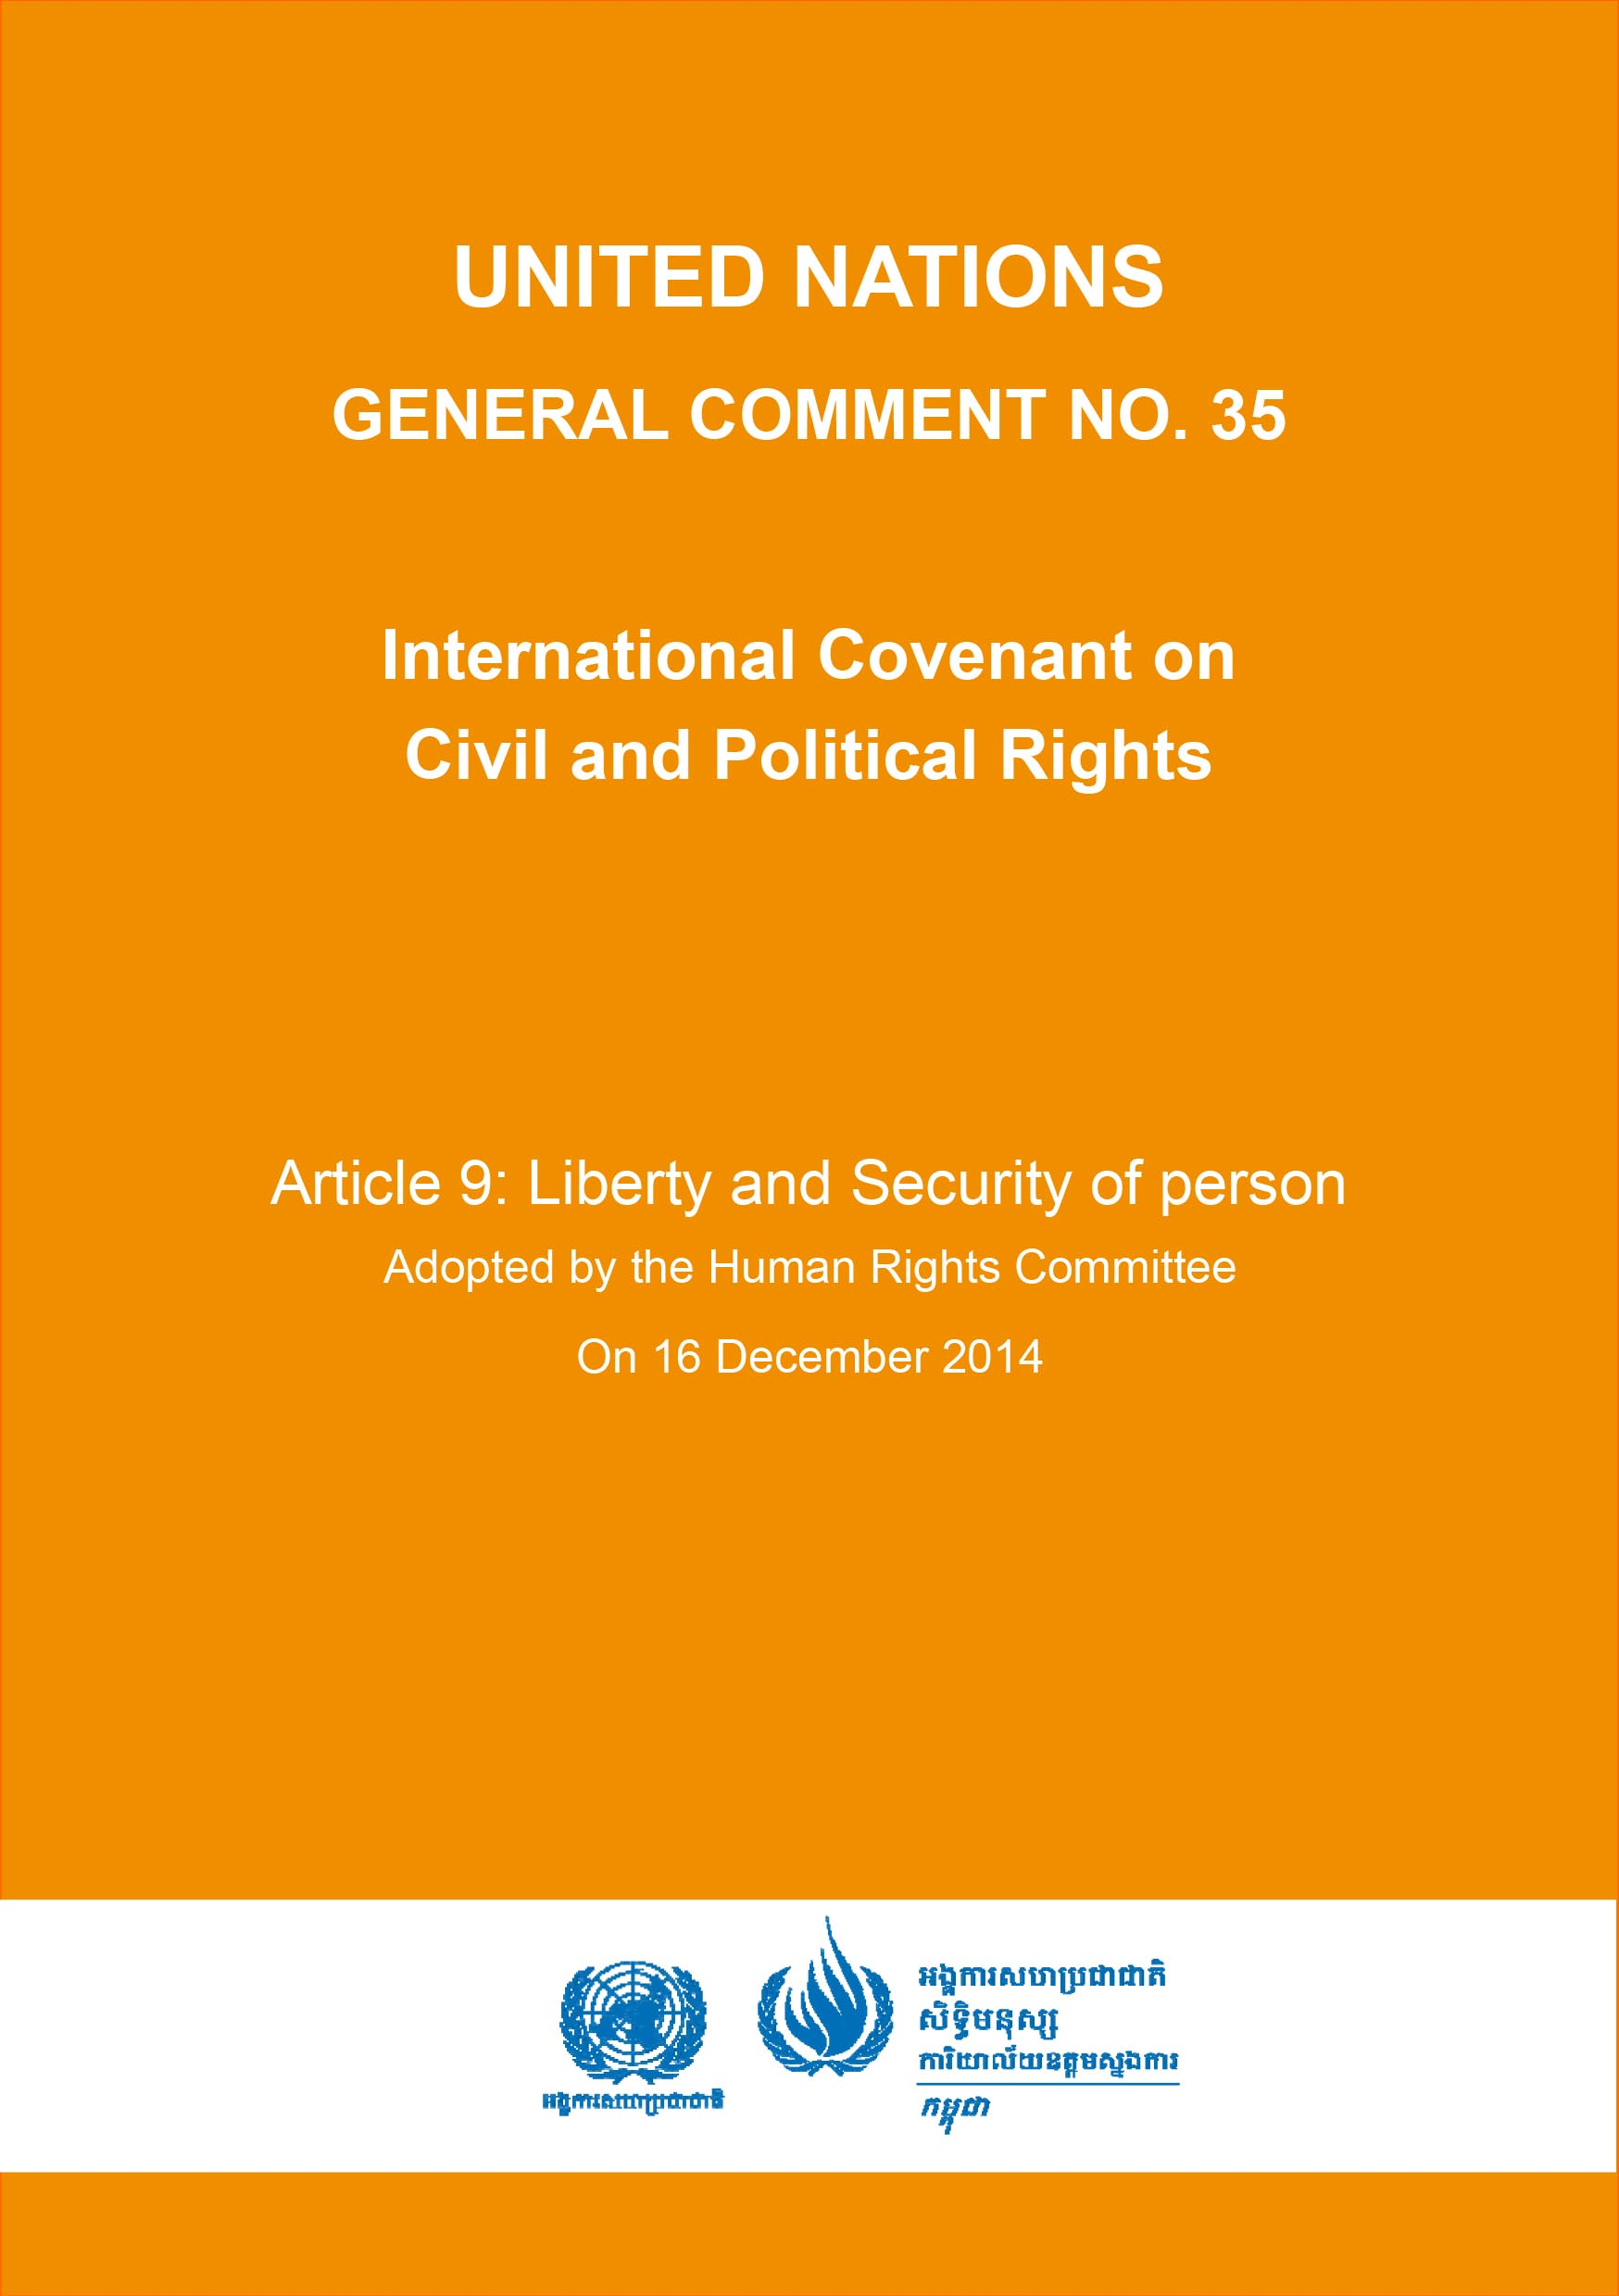 General Comment No 35 of the Human Rights Committee, on Liberty and Security of person